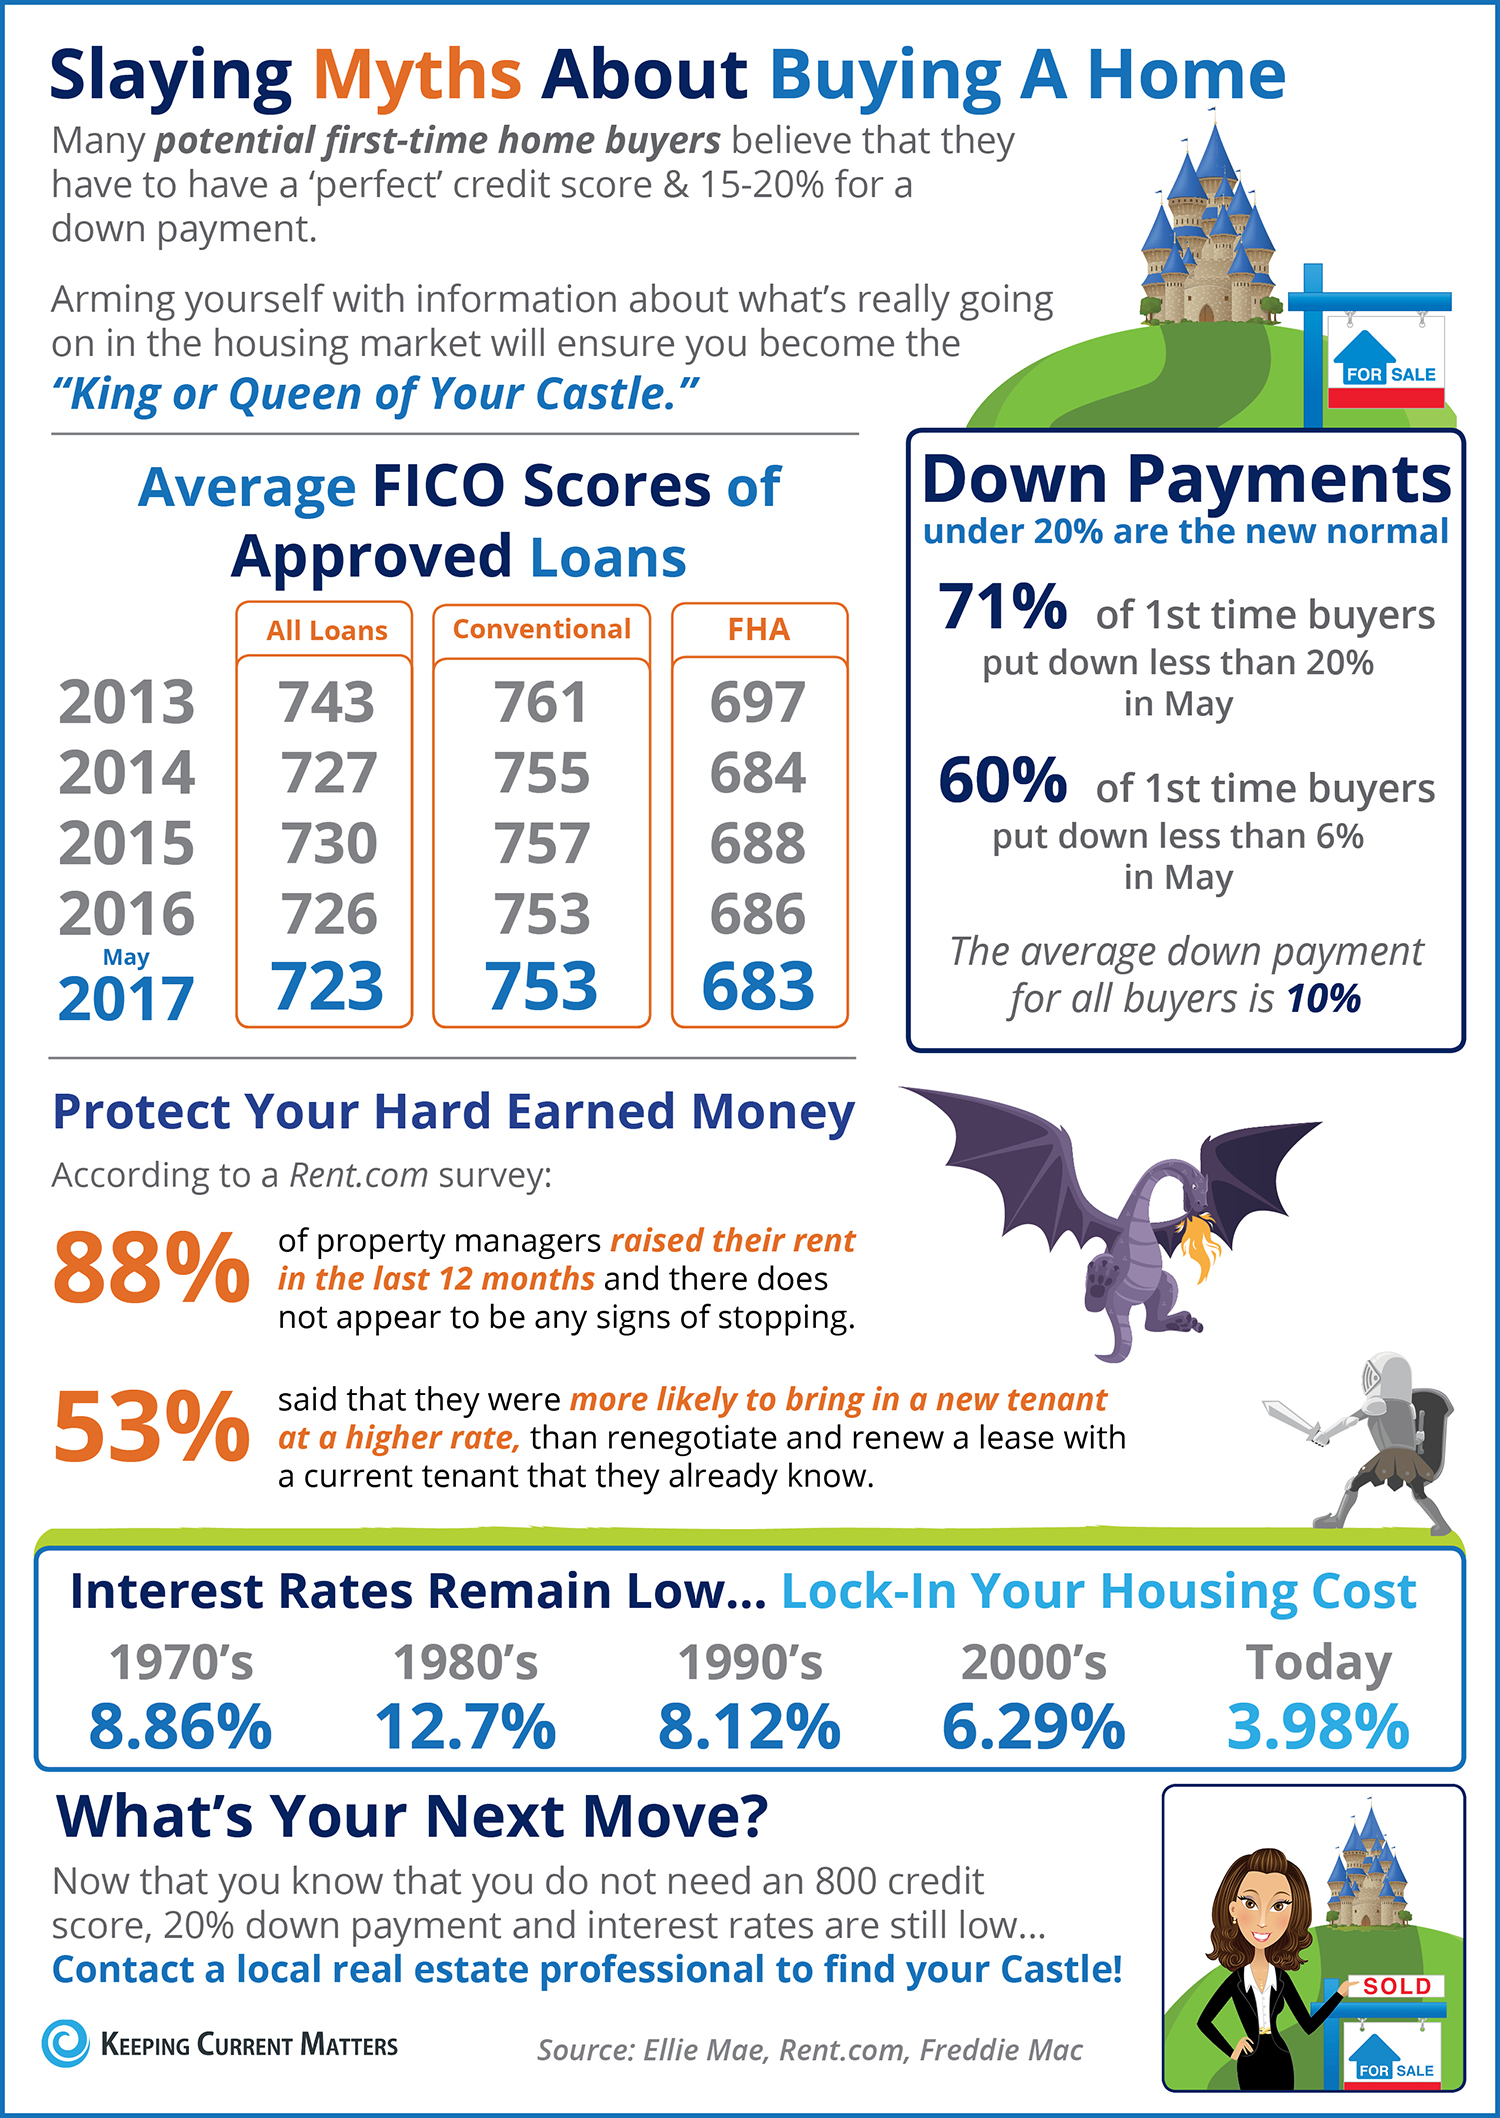 Home Buying Myths Slayed [INFOGRAPHIC] | Keeping Current Matters